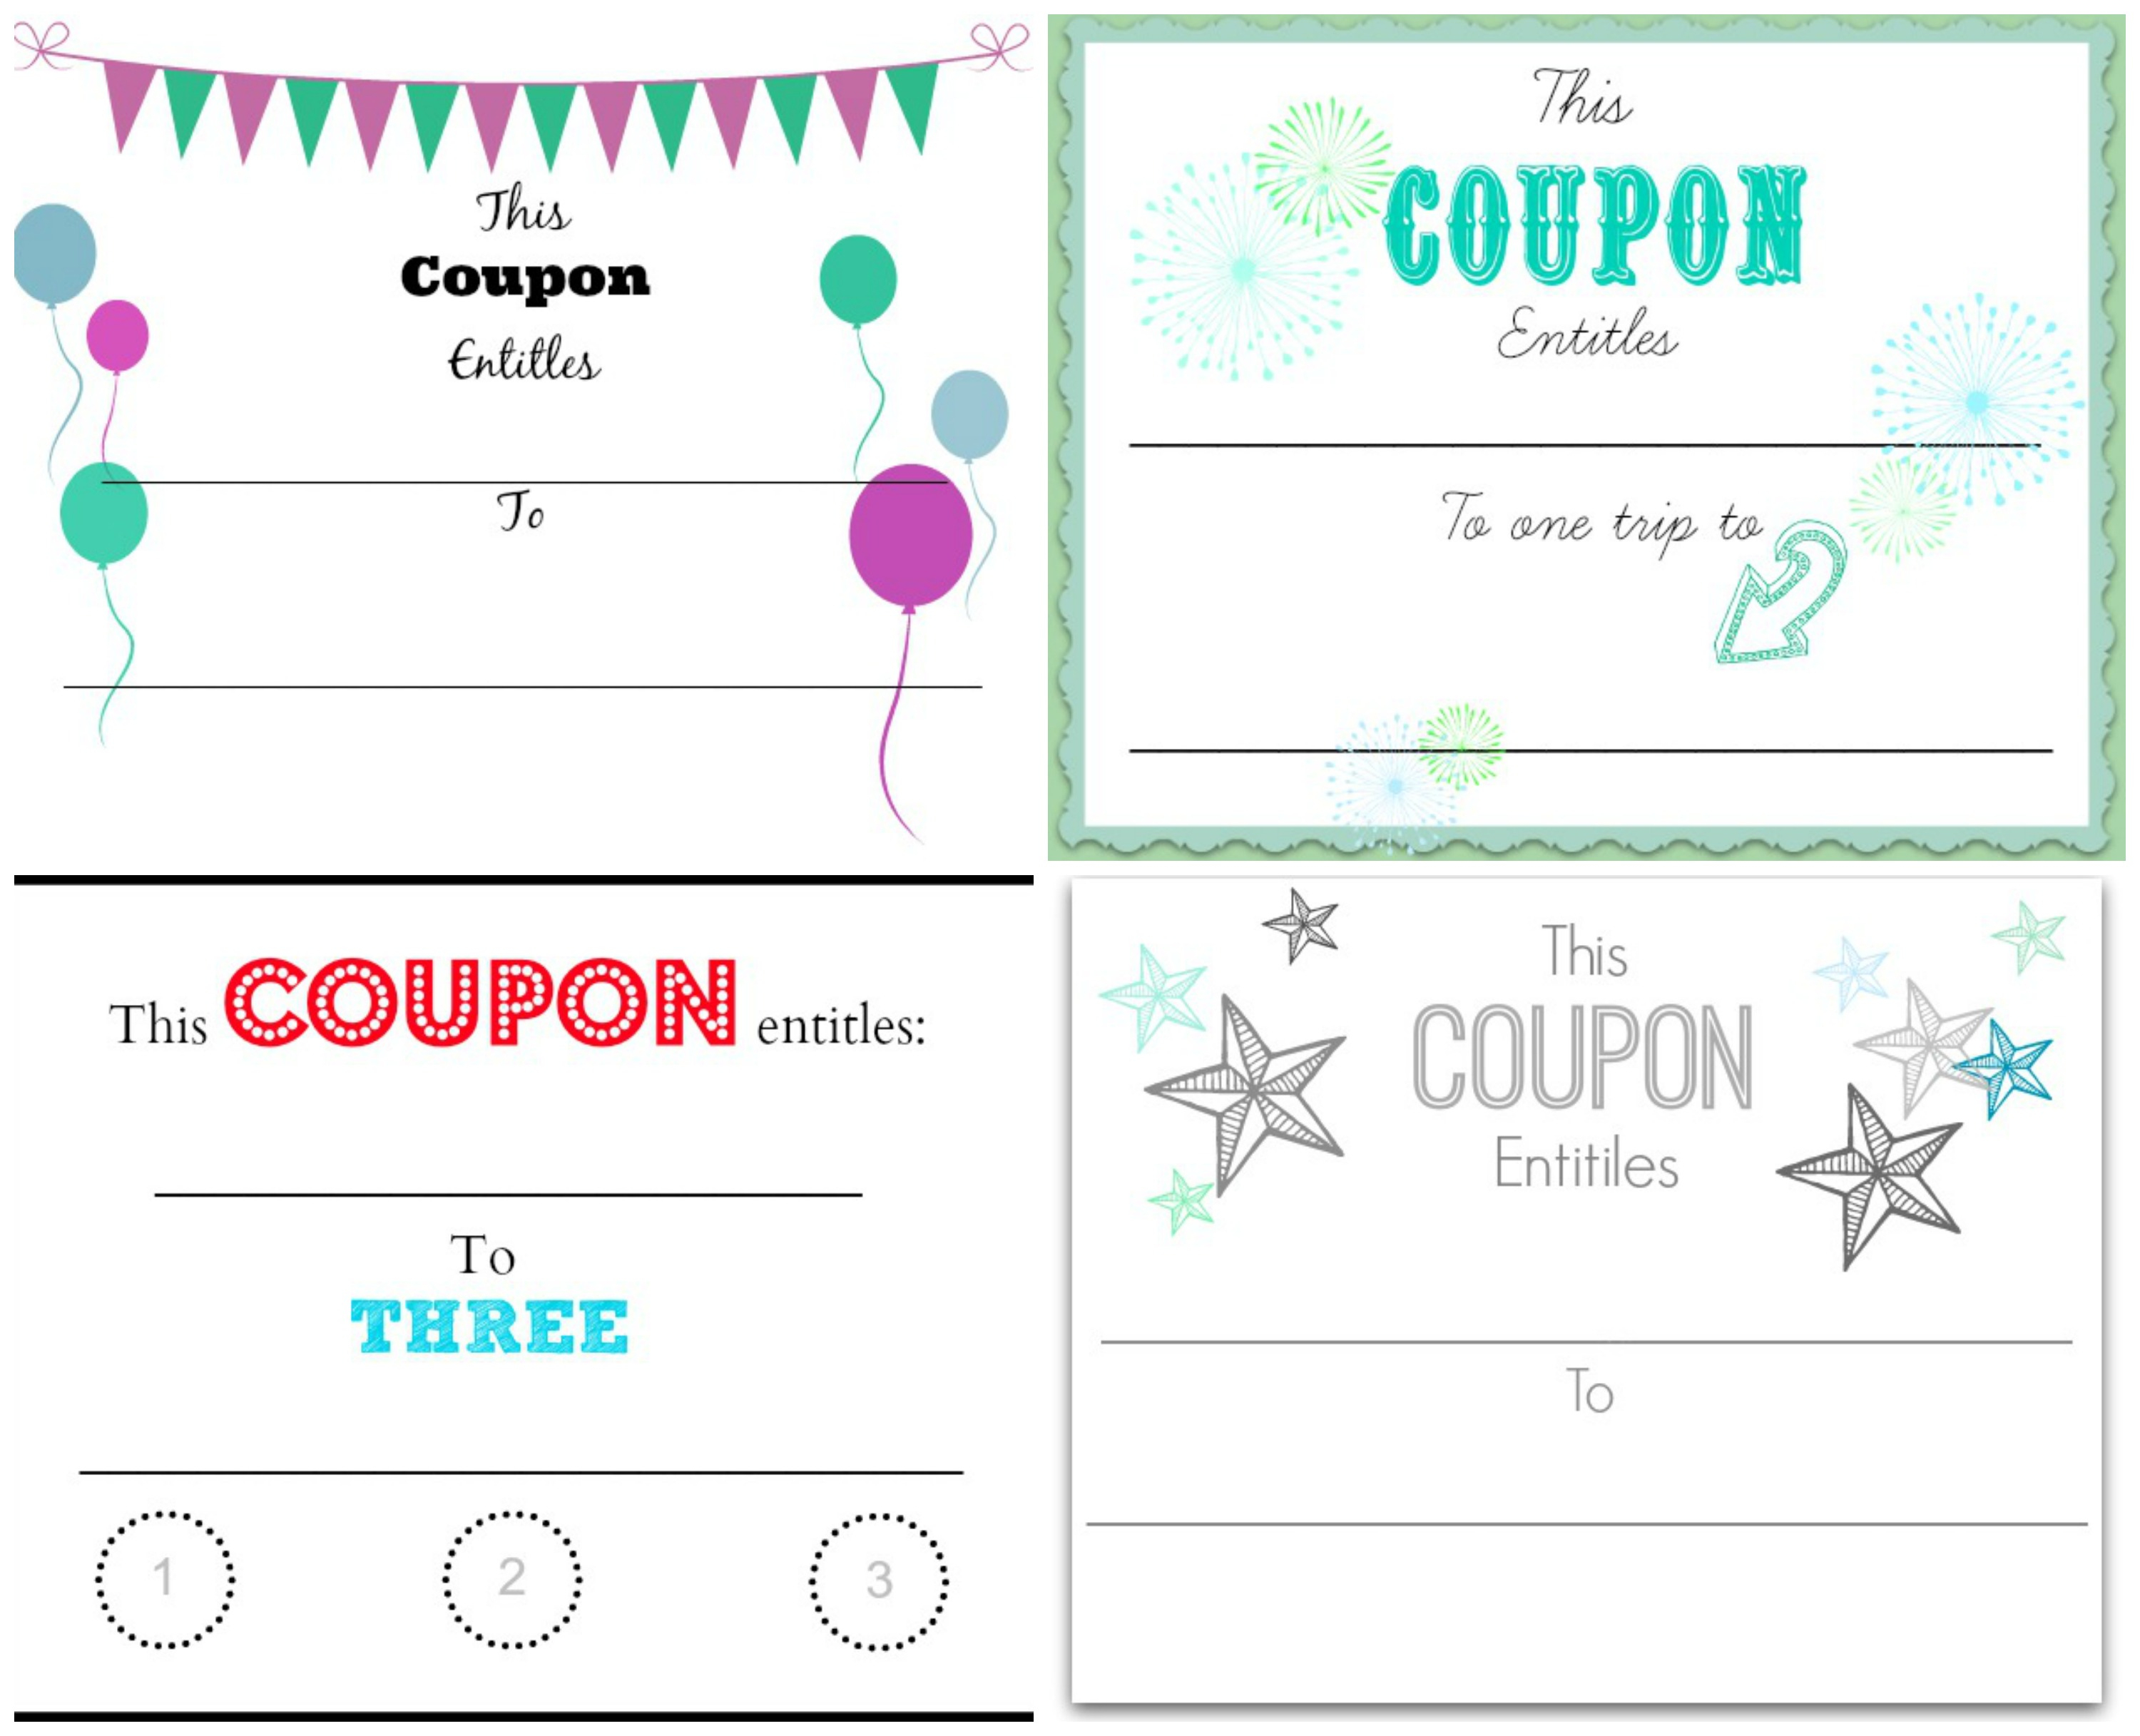 Blank Coupons Templates 29 Images Of Customizable Coupon Template - Make Your Own Printable Coupons For Free